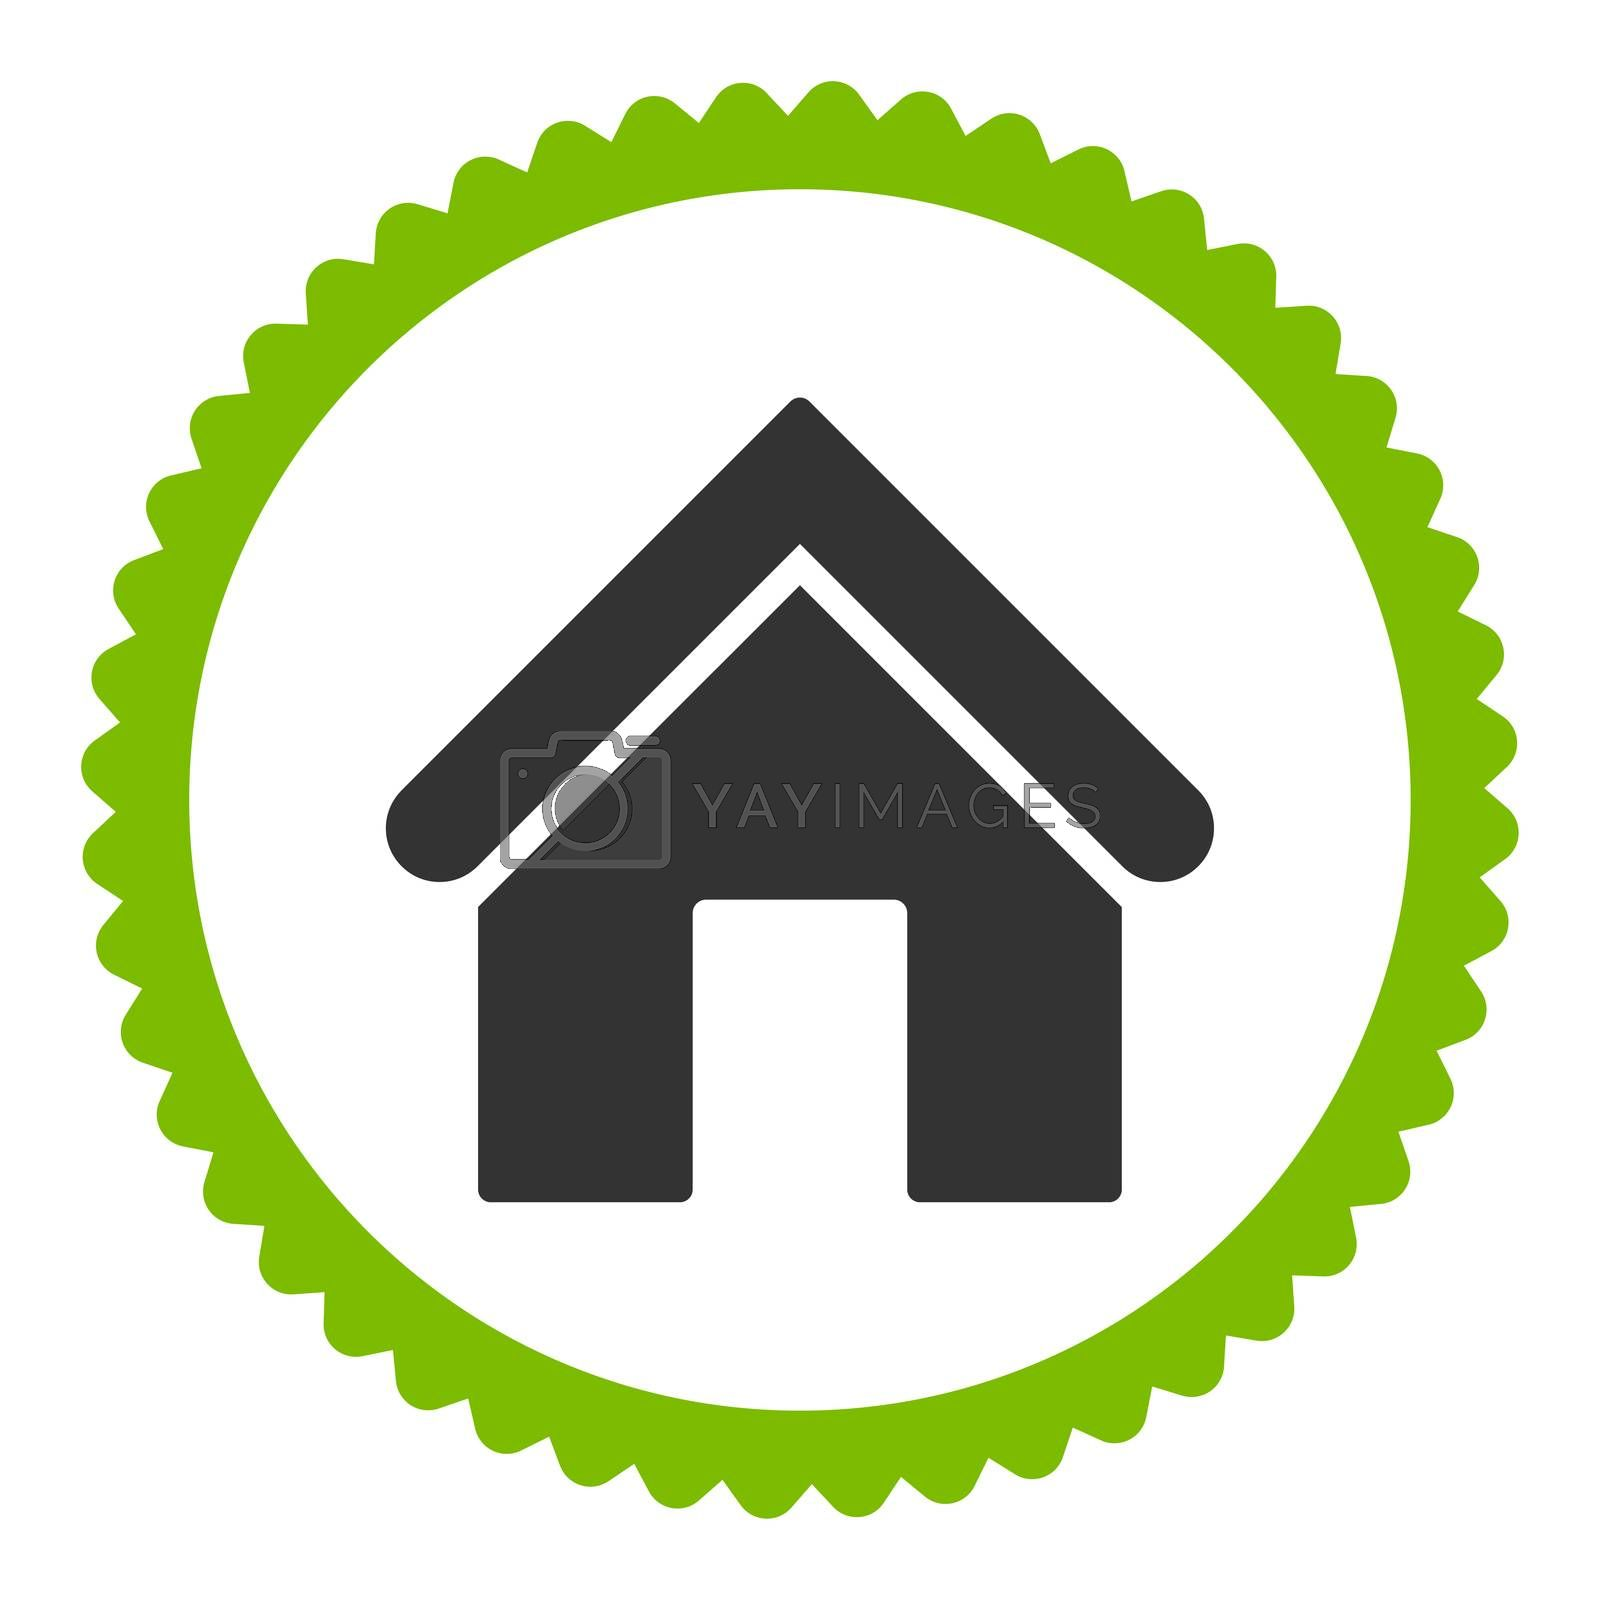 Home flat eco green and gray colors round stamp icon by Aha-Soft